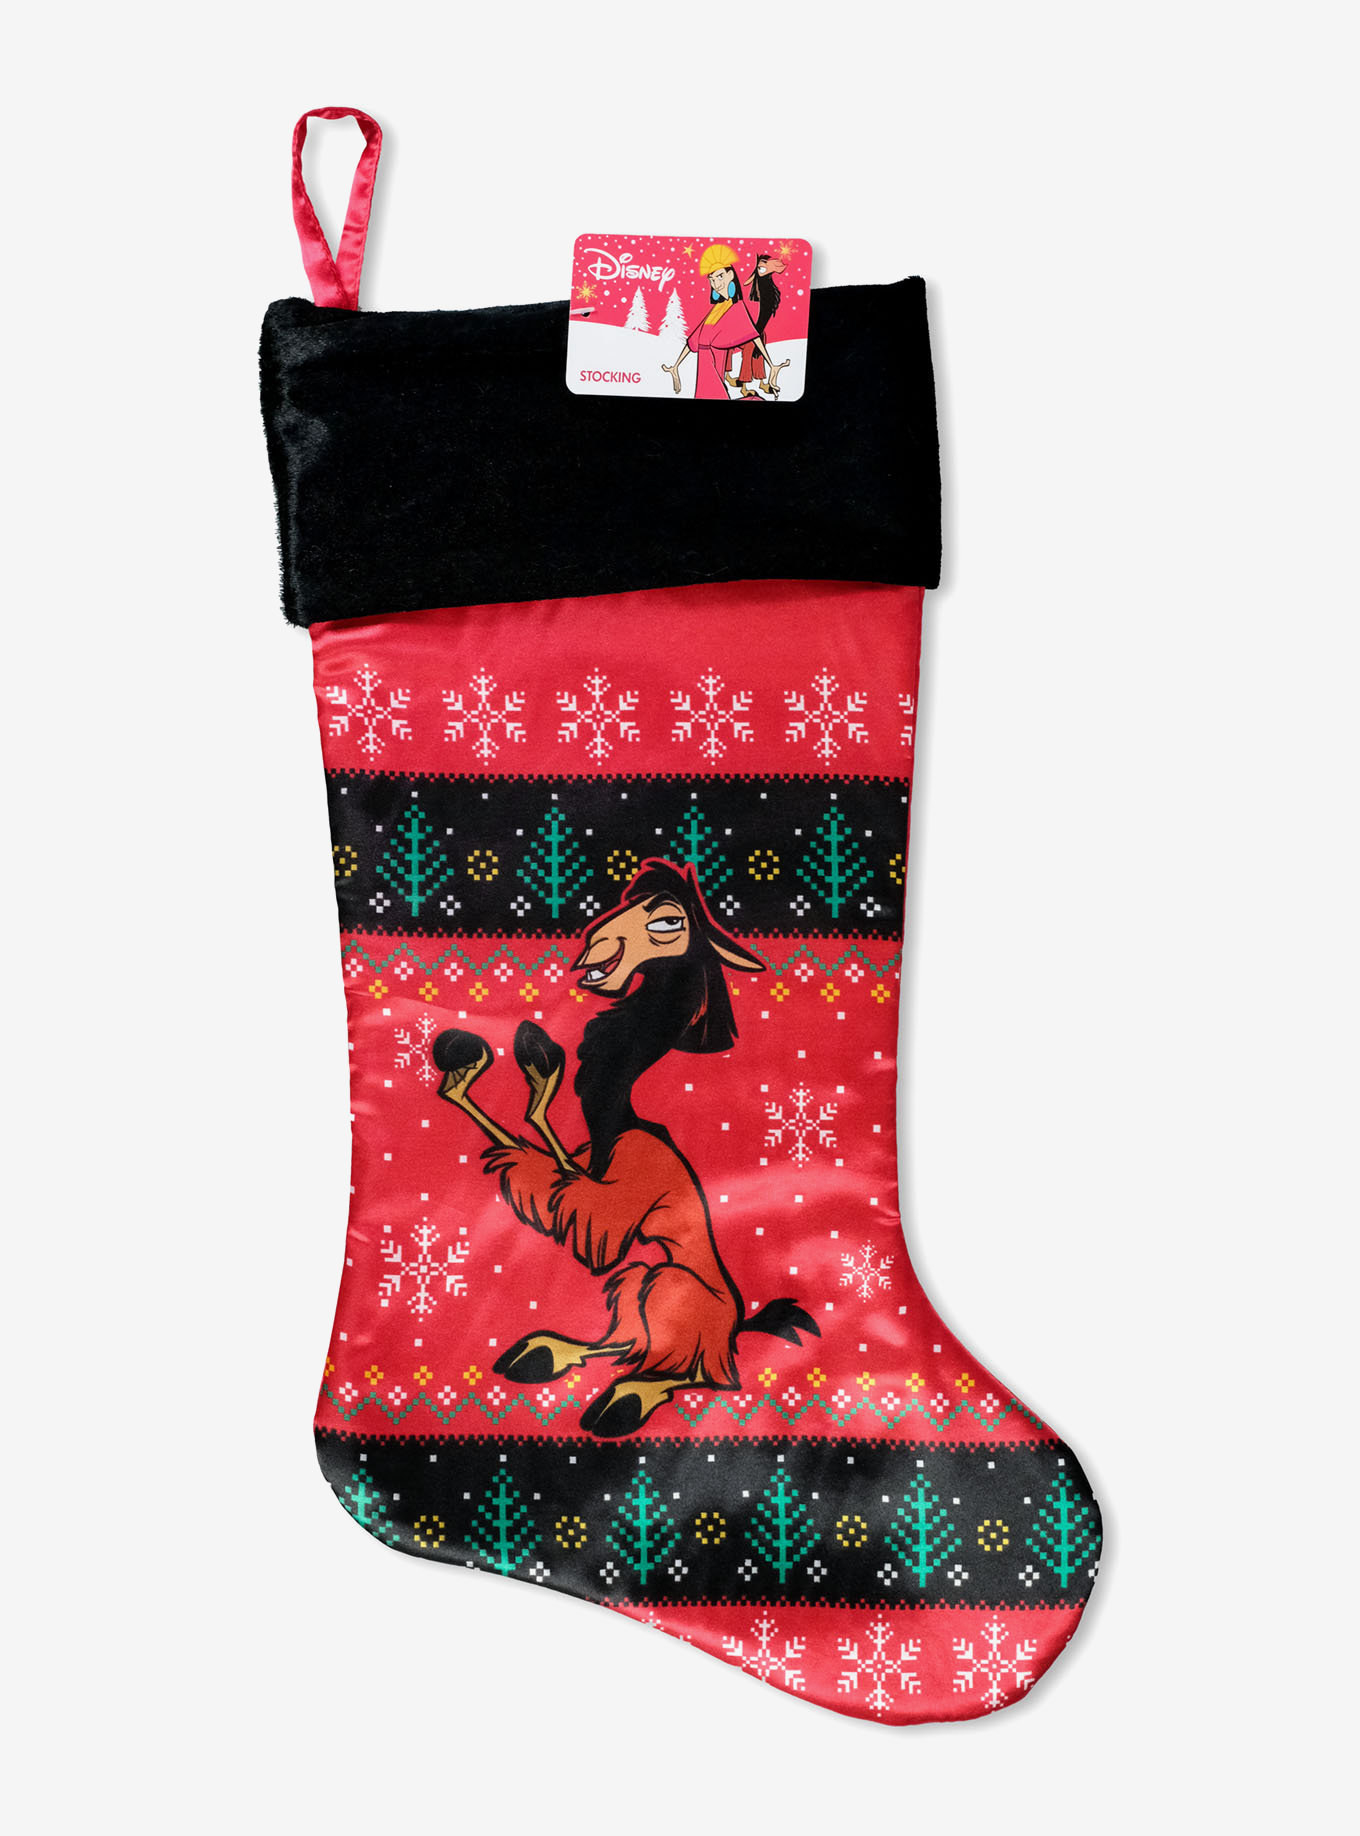 The fuzzy-trimmed, red, green, and black fair isle stocking with llama Kuzco on it